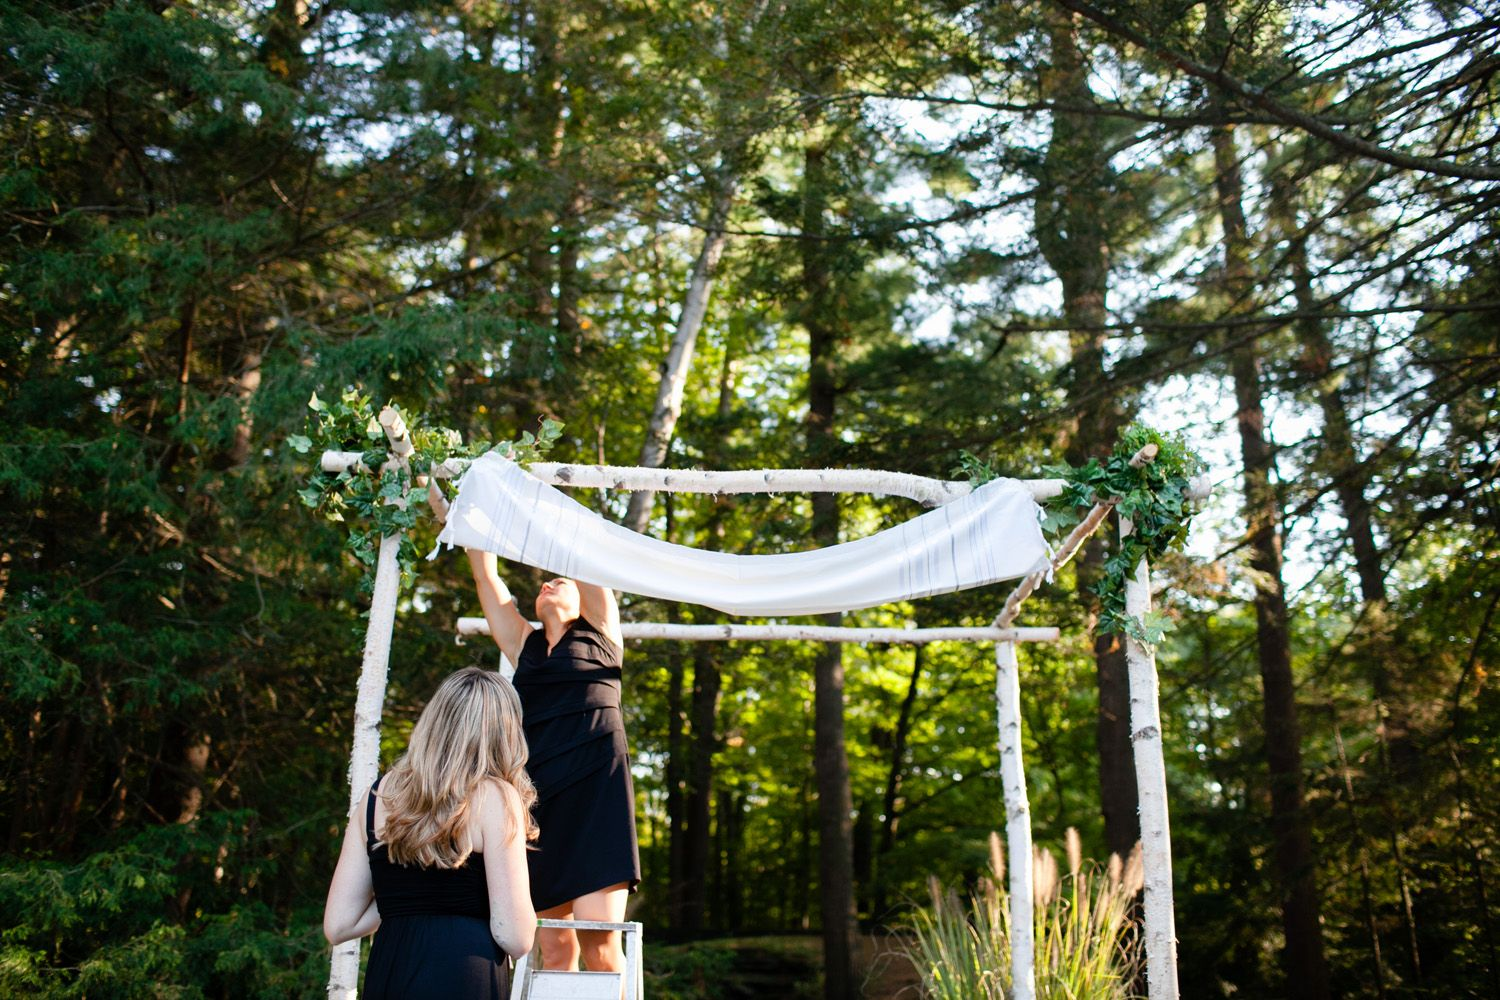 Chuppah Preparations By Events Jackie M At Look Memorial Park Wedding Photos Boston New England Photographer Jen Ing Photography